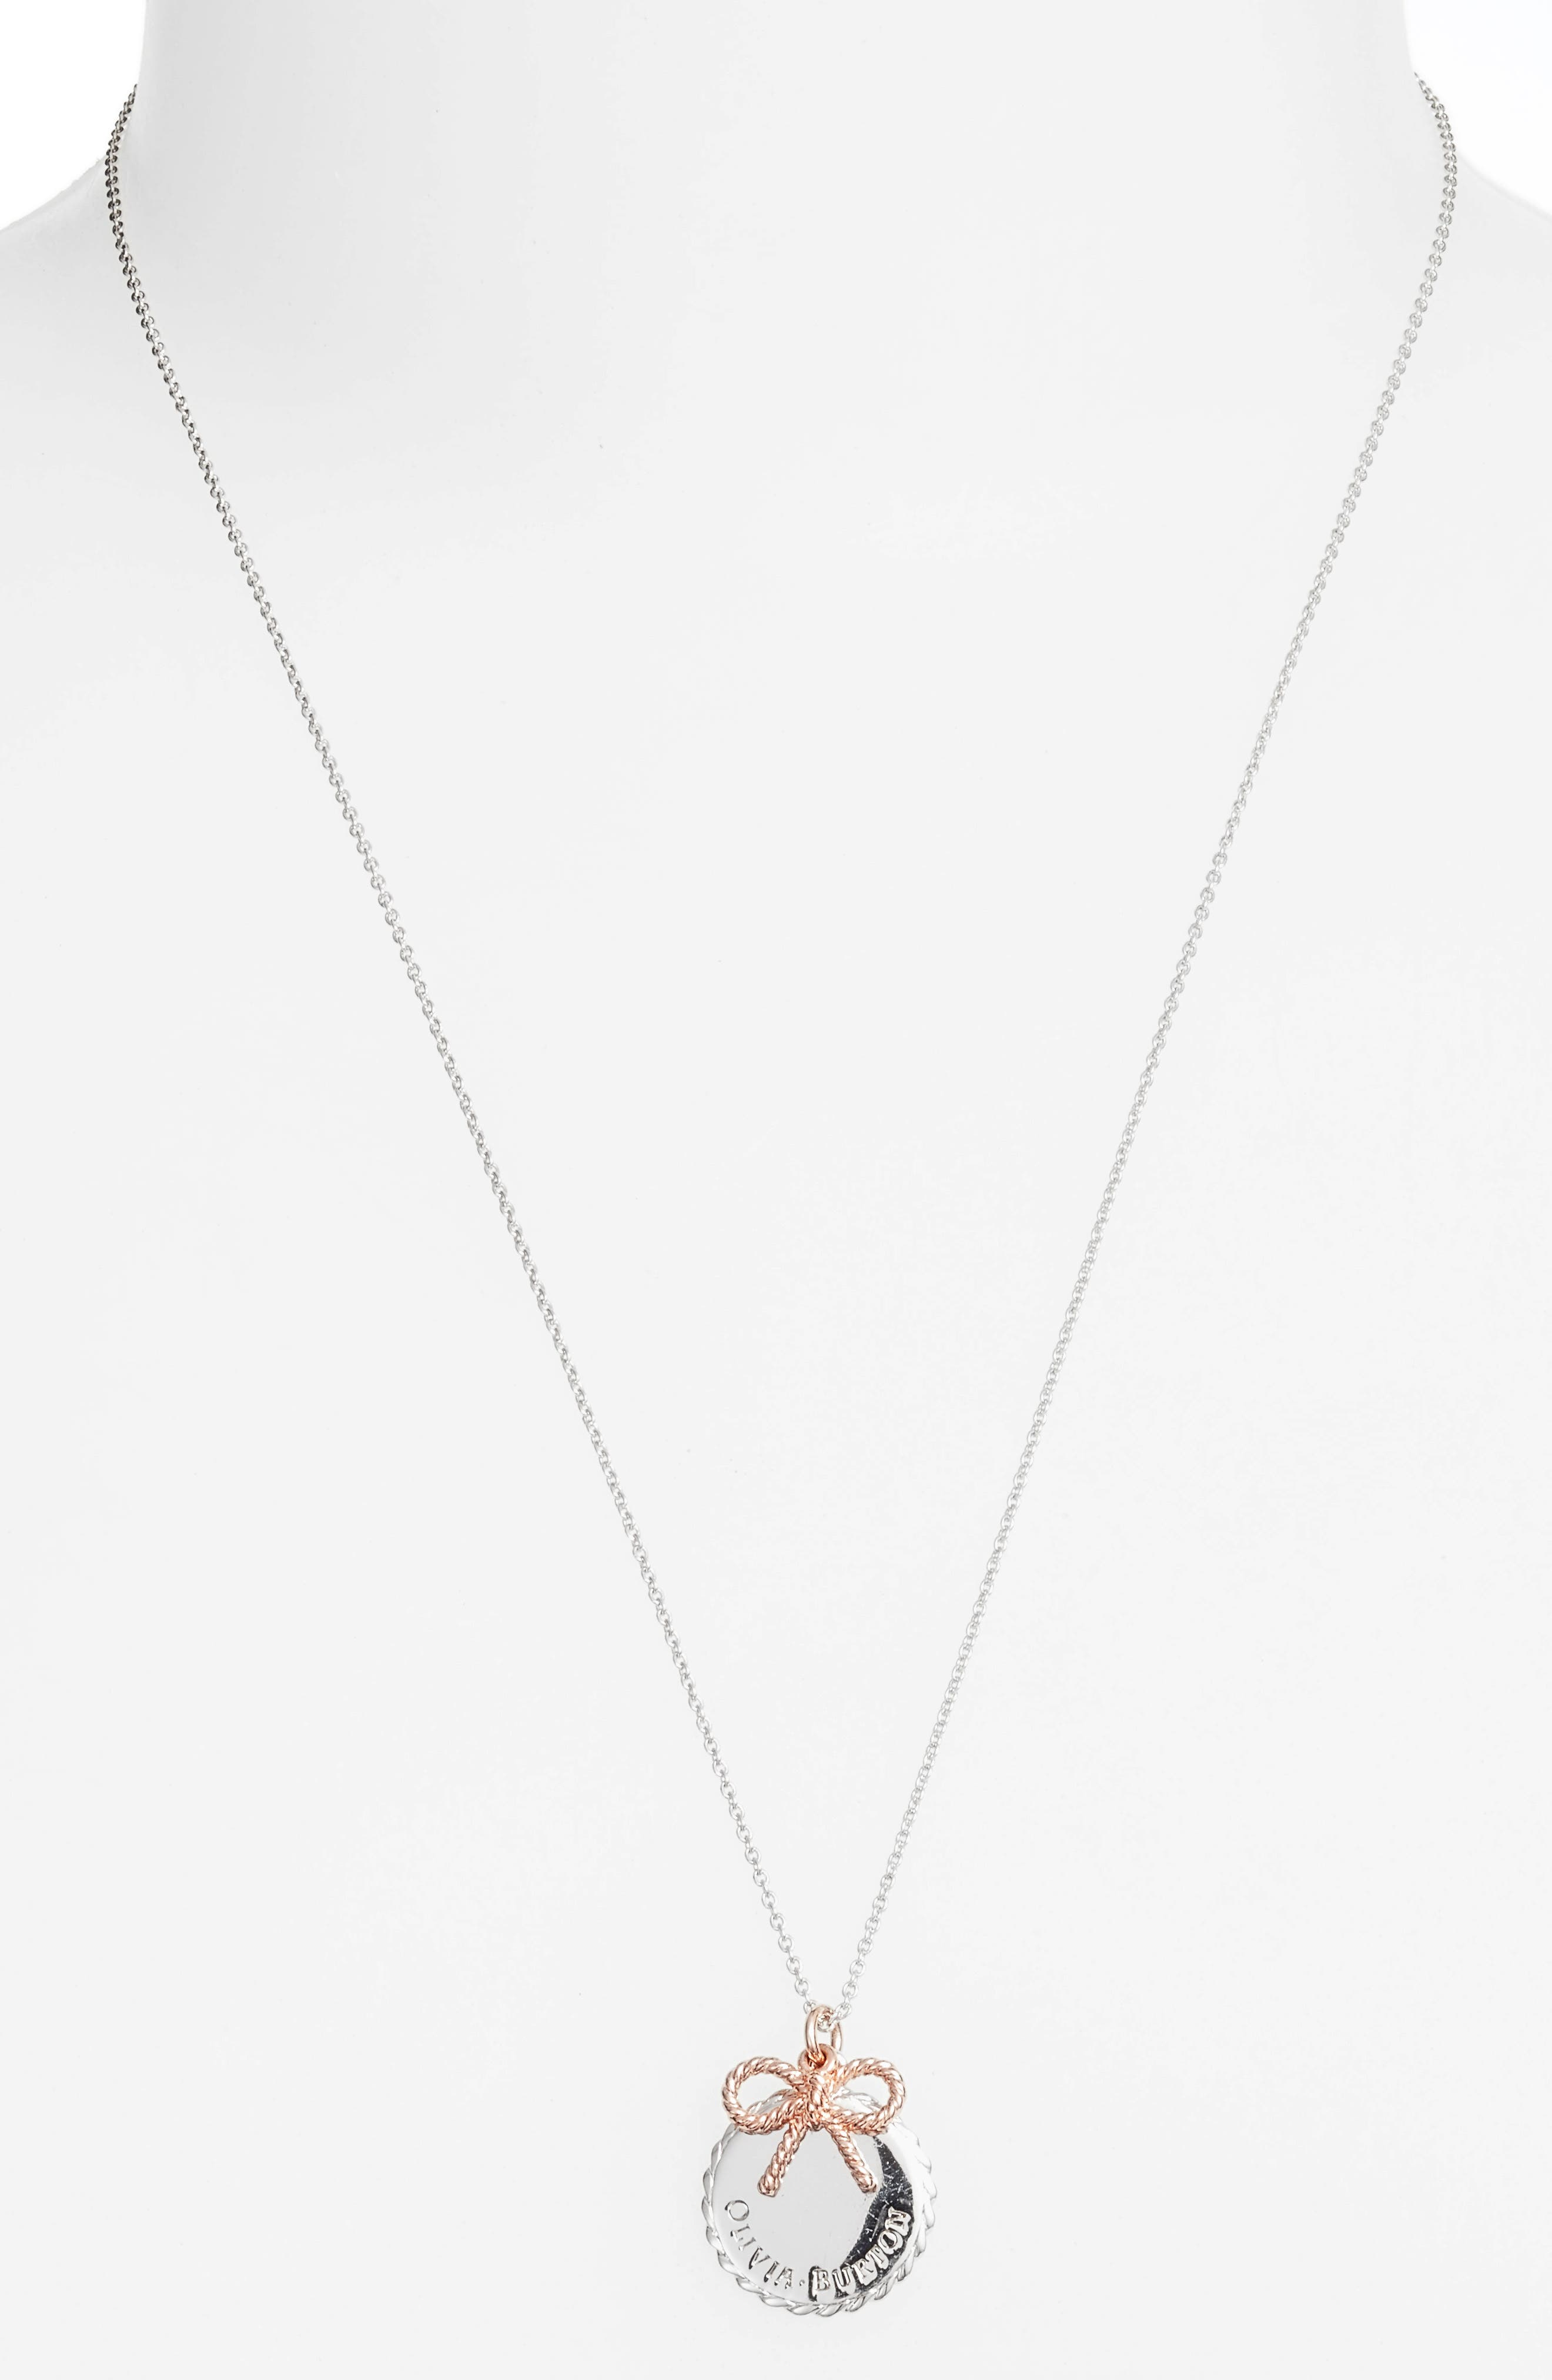 Coin & Bow Pendant Necklace,                         Main,                         color, Silver/ Rose Gold